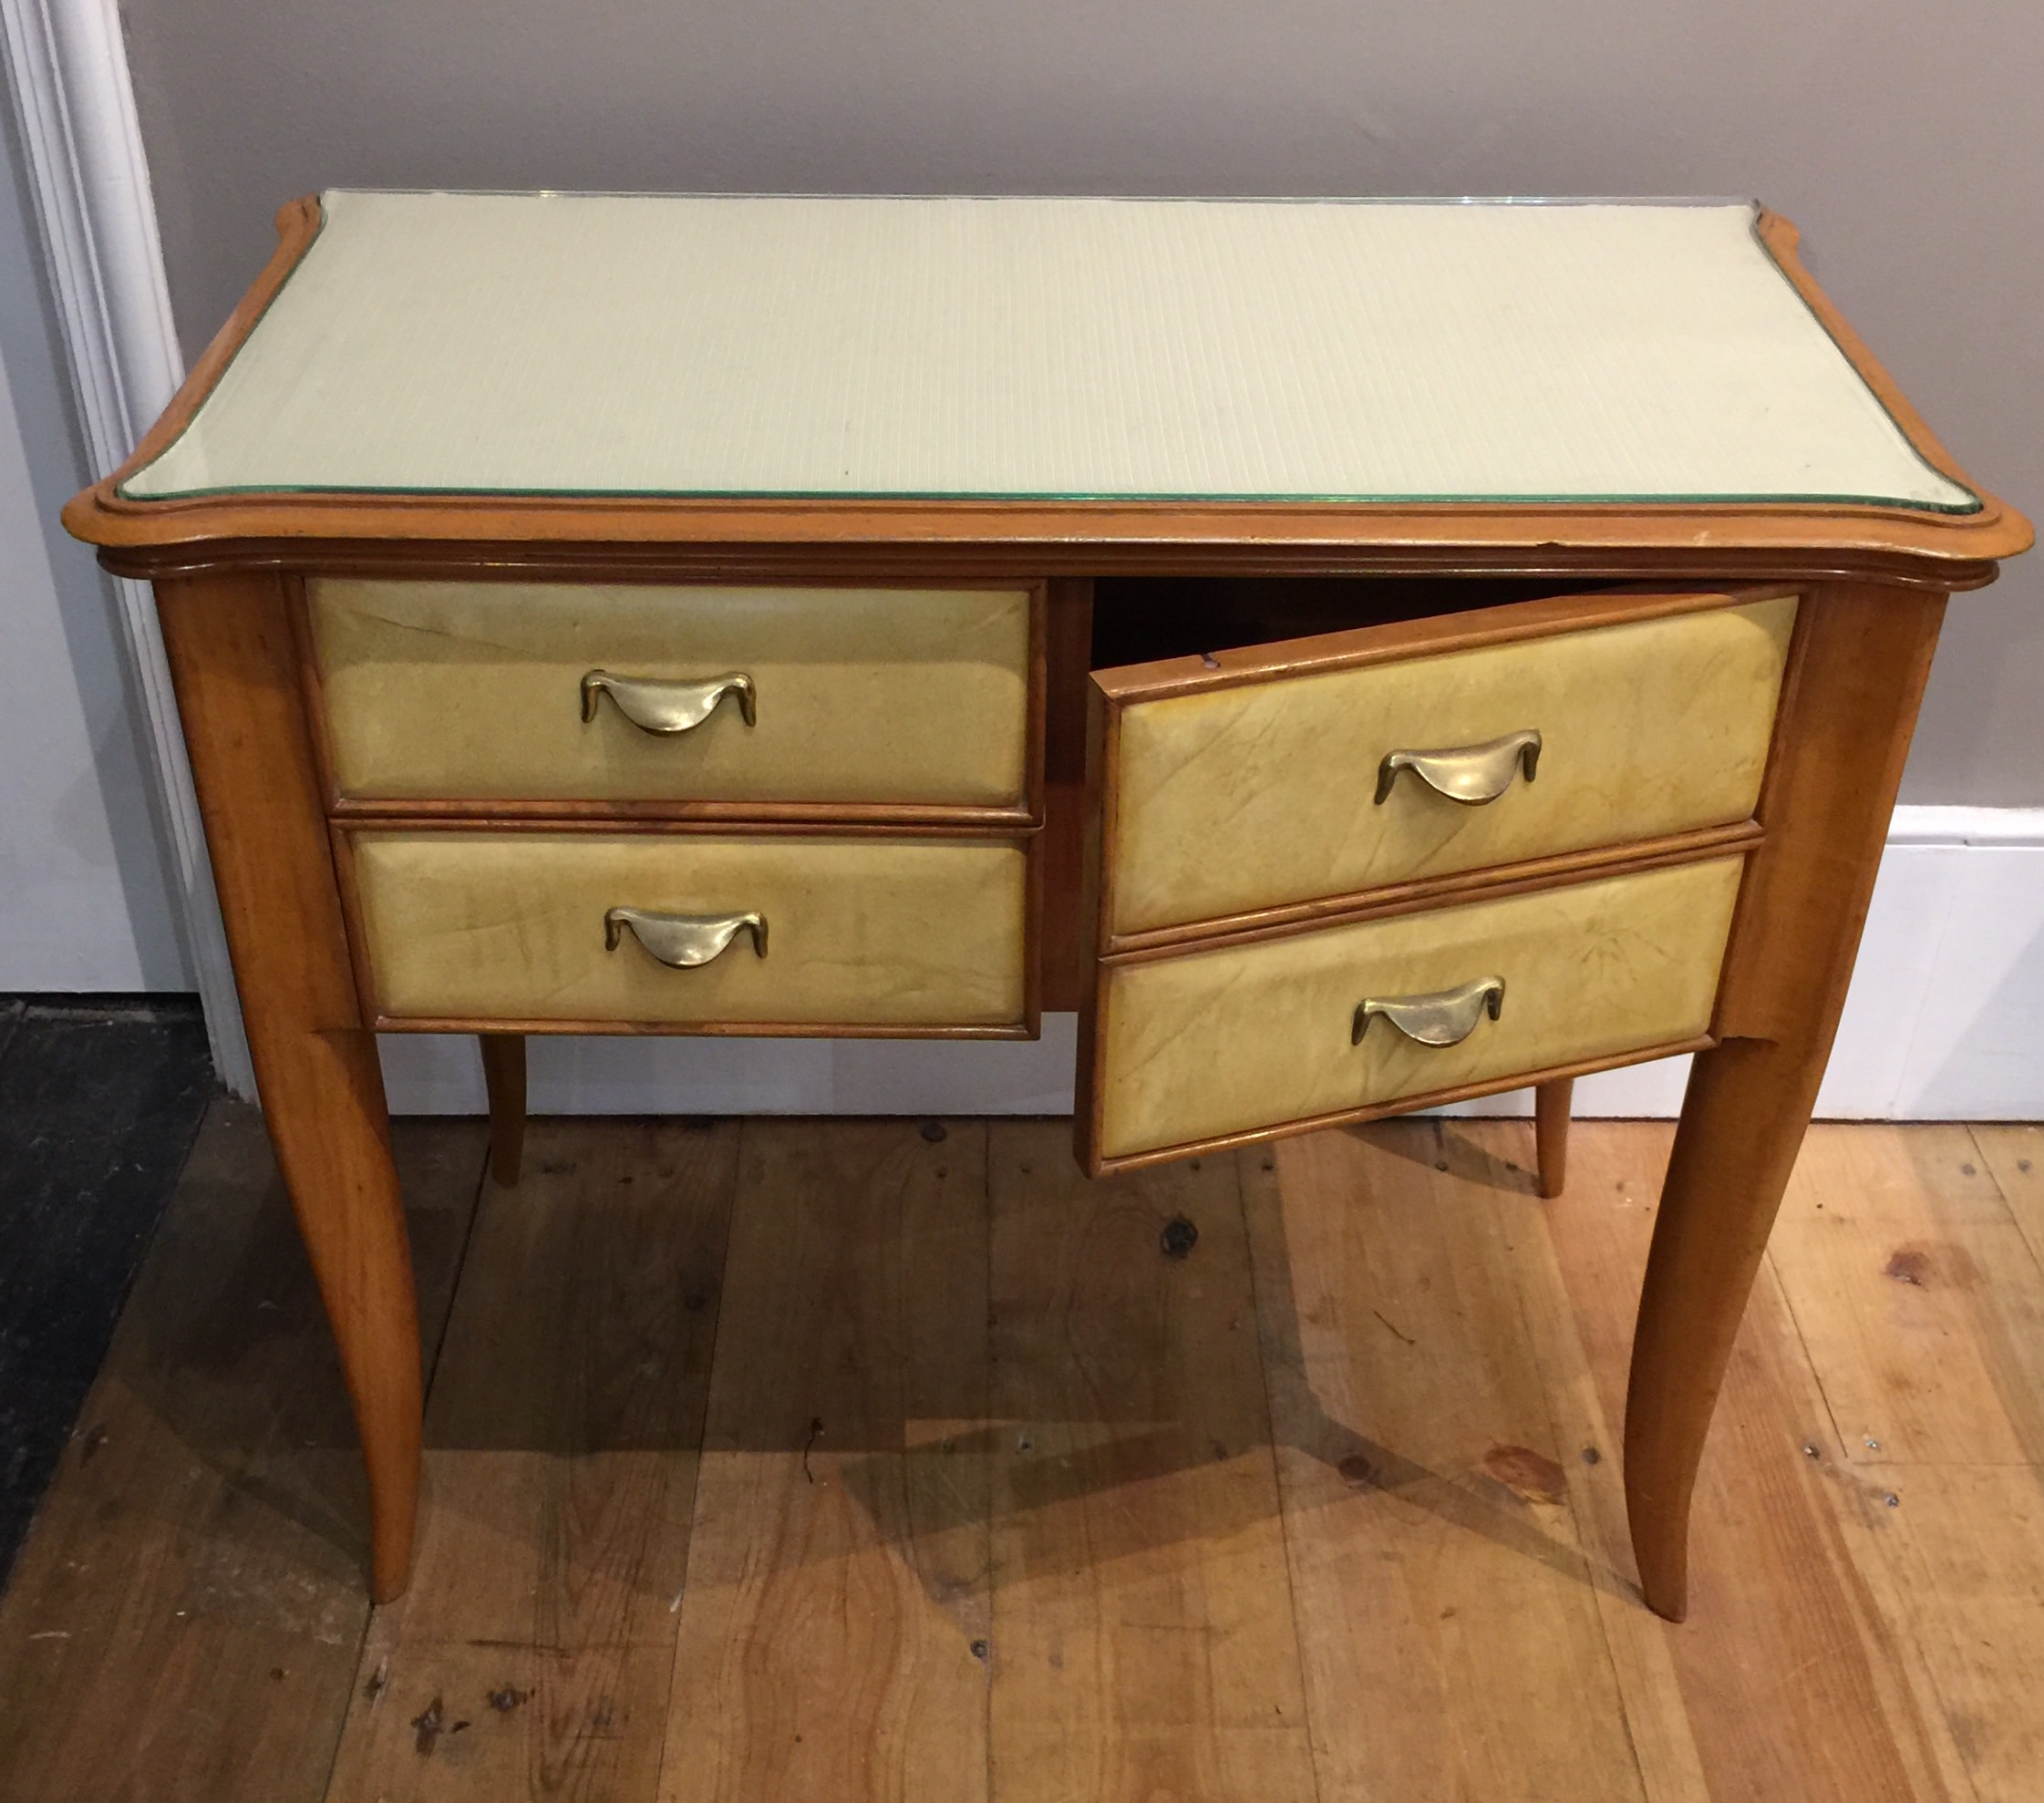 <span class=&#34;link fancybox-details-link&#34;><a href=&#34;/artists/43-paolo-buffa/works/167-paolo-buffa-a-pair-of-italian-vellum-and-fruitwood-cabinets-circa-1940/&#34;>View Detail Page</a></span><div class=&#34;artist&#34;><strong>Paolo Buffa</strong></div> <div class=&#34;title&#34;><em>A Pair of Italian Vellum and Fruitwood Cabinets circa 1940 Each with a cupboard and two small drawers, the tops lined in fabric under glazed covers</em>, circa 1940</div> <div class=&#34;dimensions&#34;>54h x 62w x 36d cm</div><div class=&#34;price&#34;>£6,750.00</div>